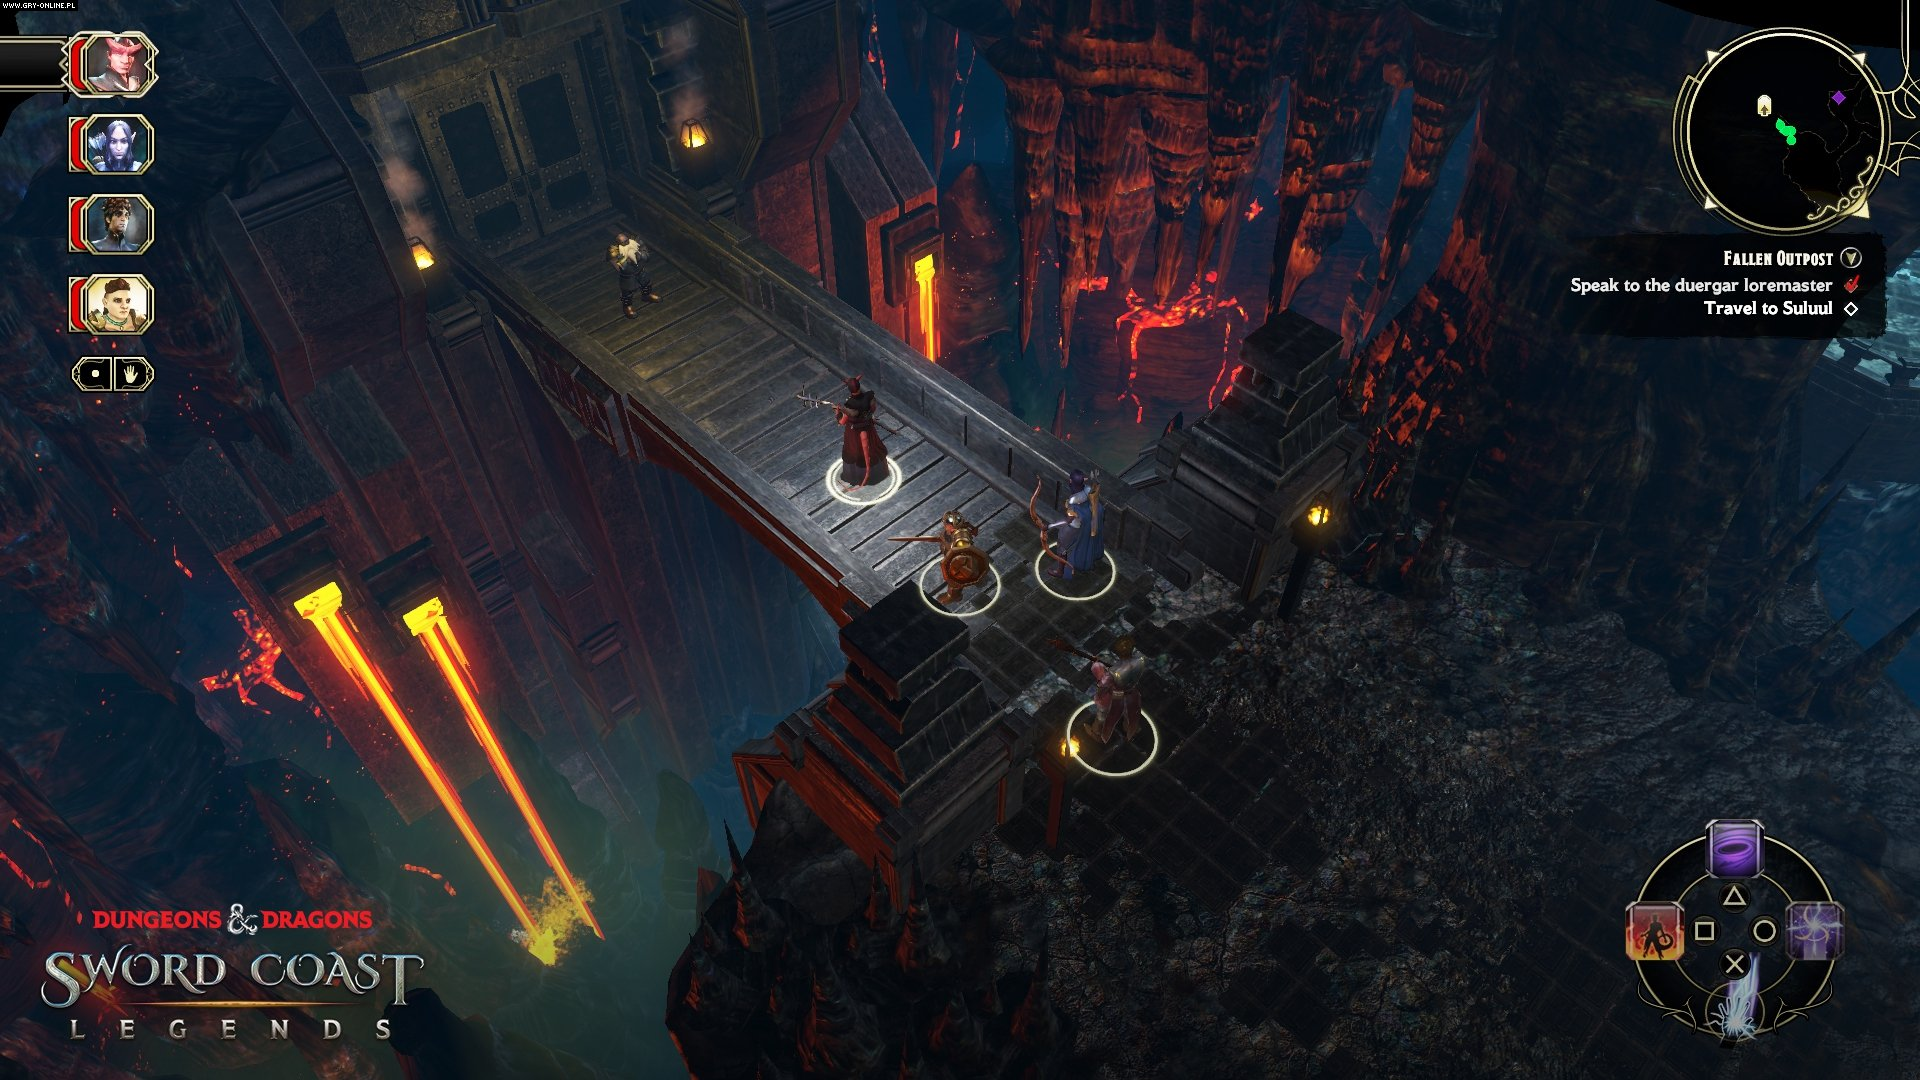 Sword Coast Legends PC, PS4, XONE Gry Screen 6/42, Digital Extremes, Wizards of the Coast